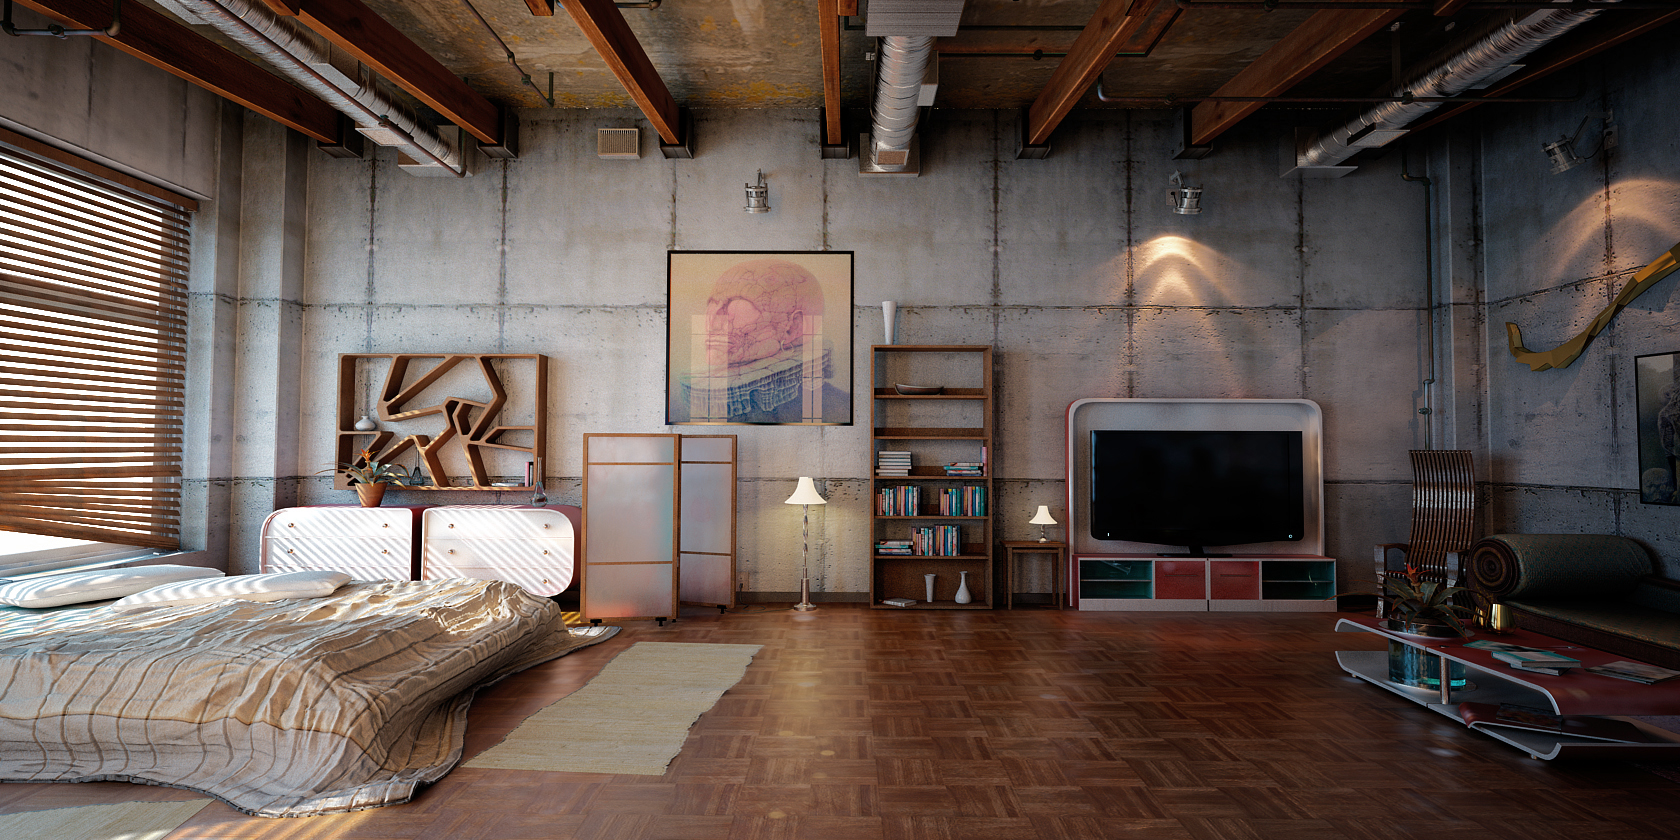 Industrial loft 2 by denisvema on deviantart for 1 loft